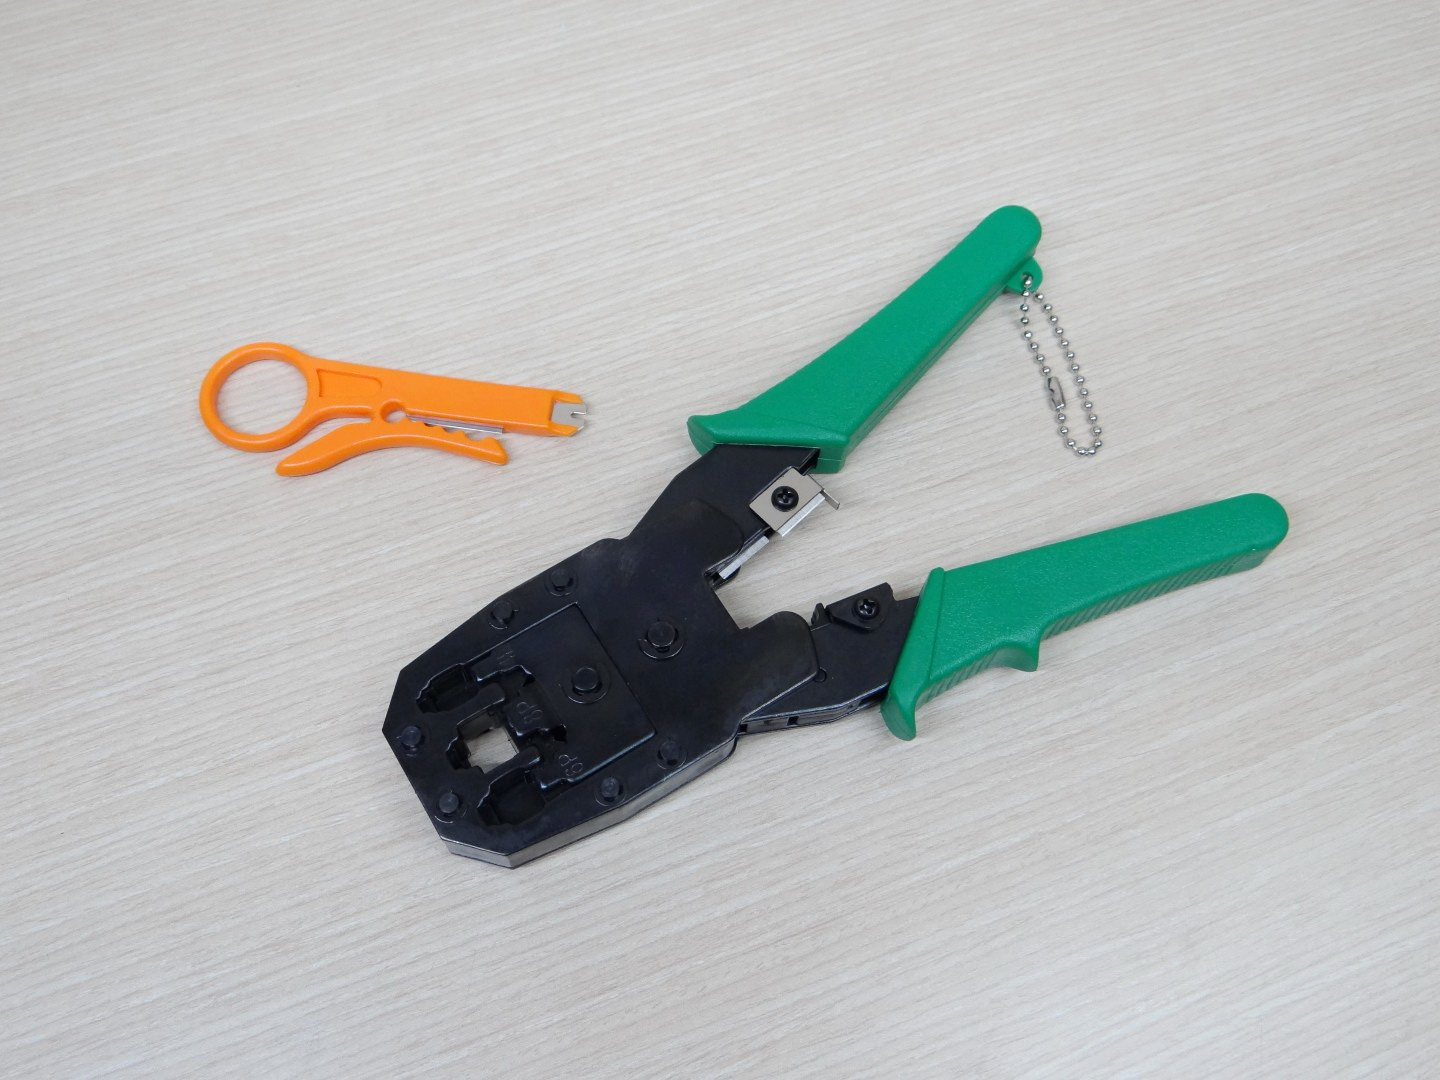 HT-315 Networking connector crimping pliers 4p 7.65mm / 6p 9.65mm / 8p 11.68mm